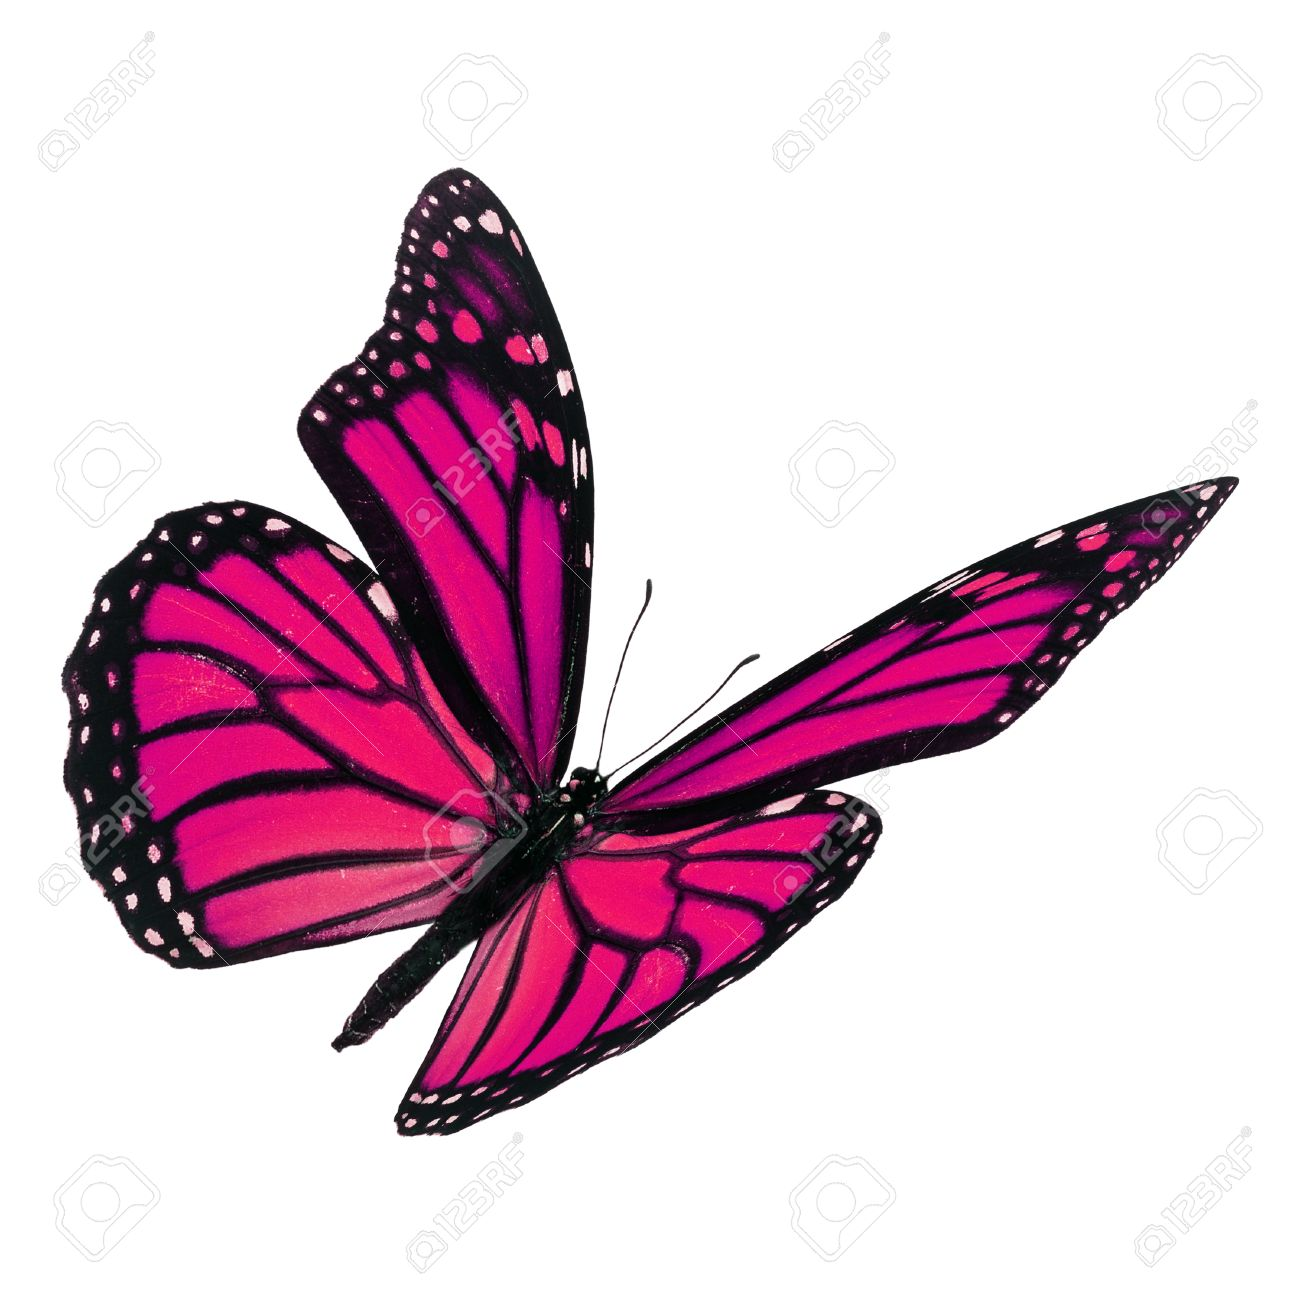 Beautiful pink monarch butterfly flying isolated on white background - 50362660